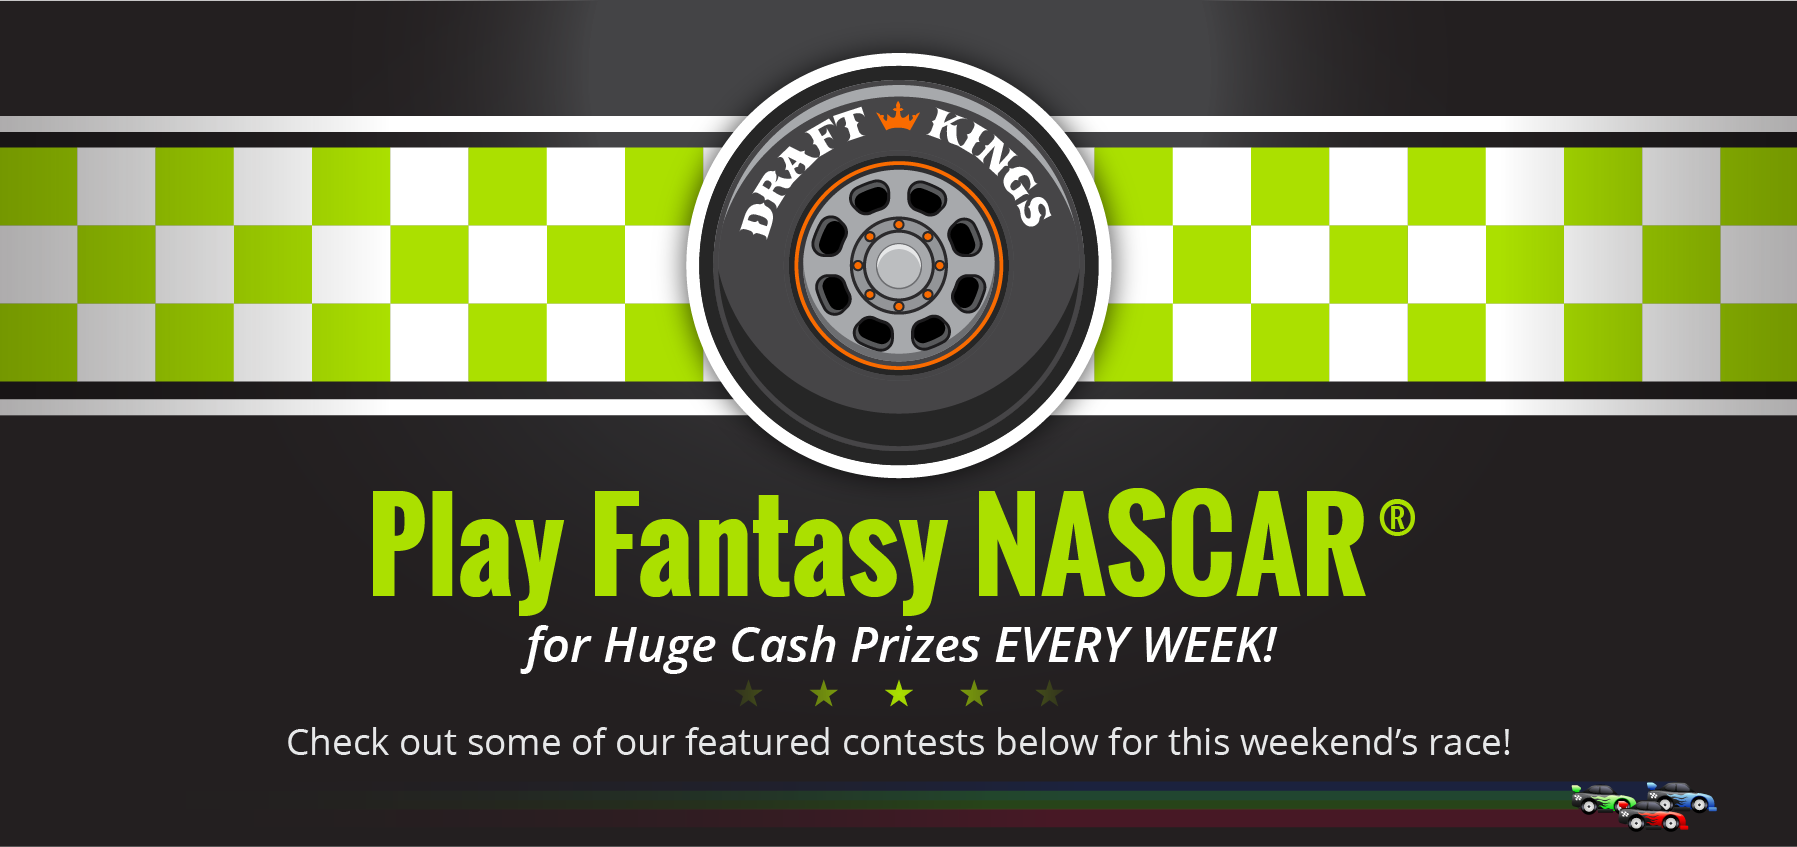 Official Daily Fantasy Game of NASCAR. Huge Cash Prizes EVERY Week! Check out some of featured contests below for this week's race!